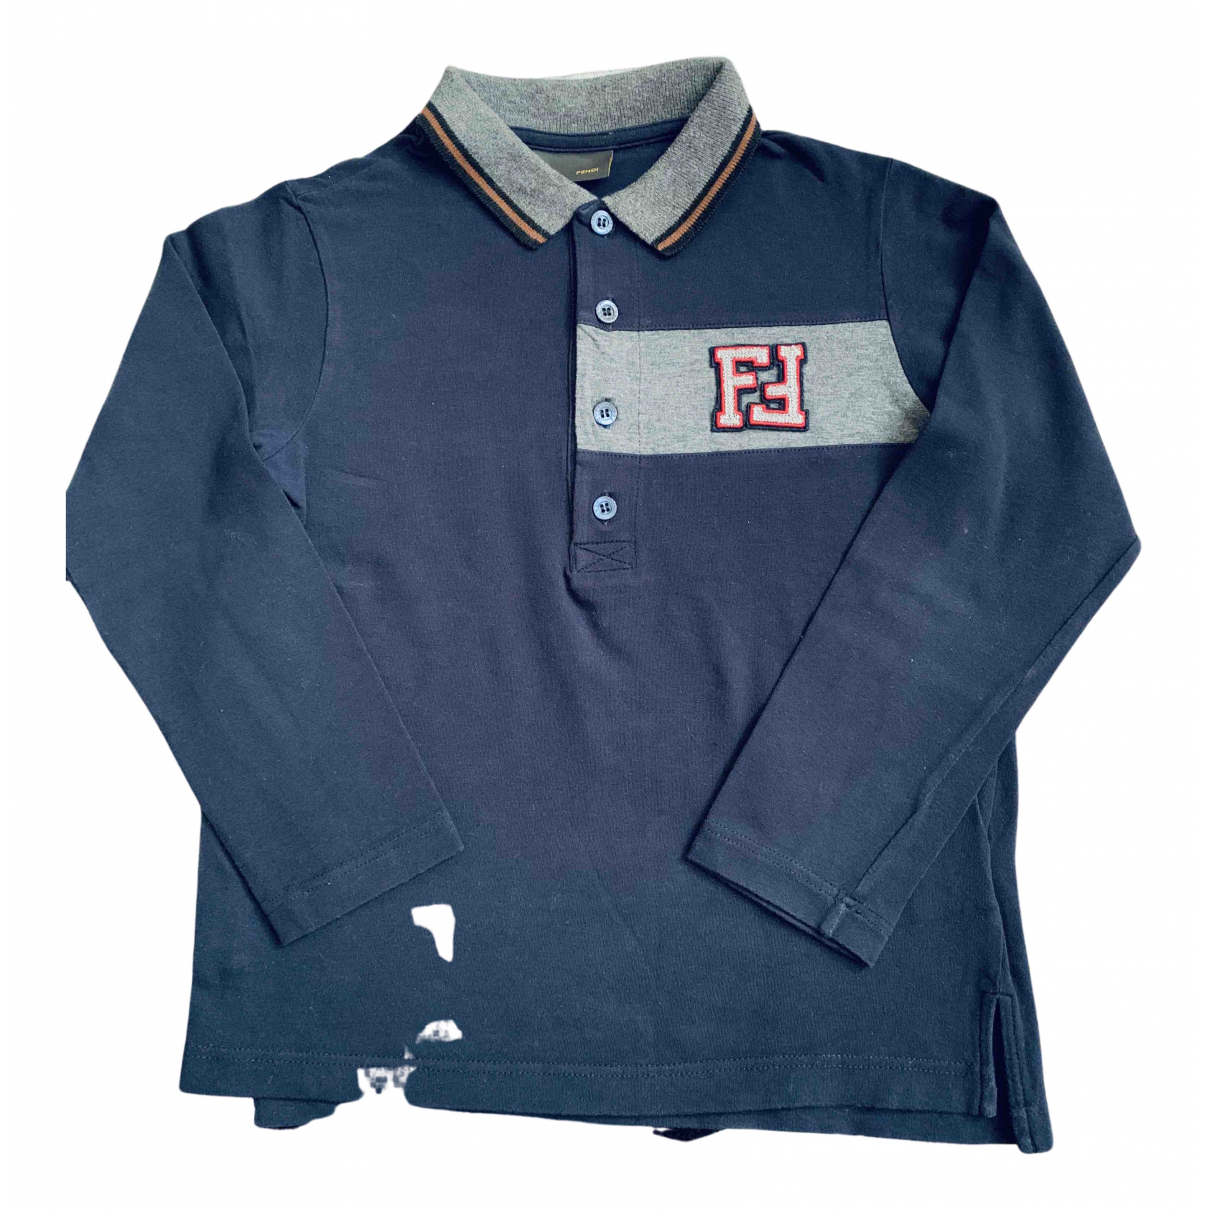 Fendi N Blue Cotton  top for Kids 8 years - up to 128cm FR